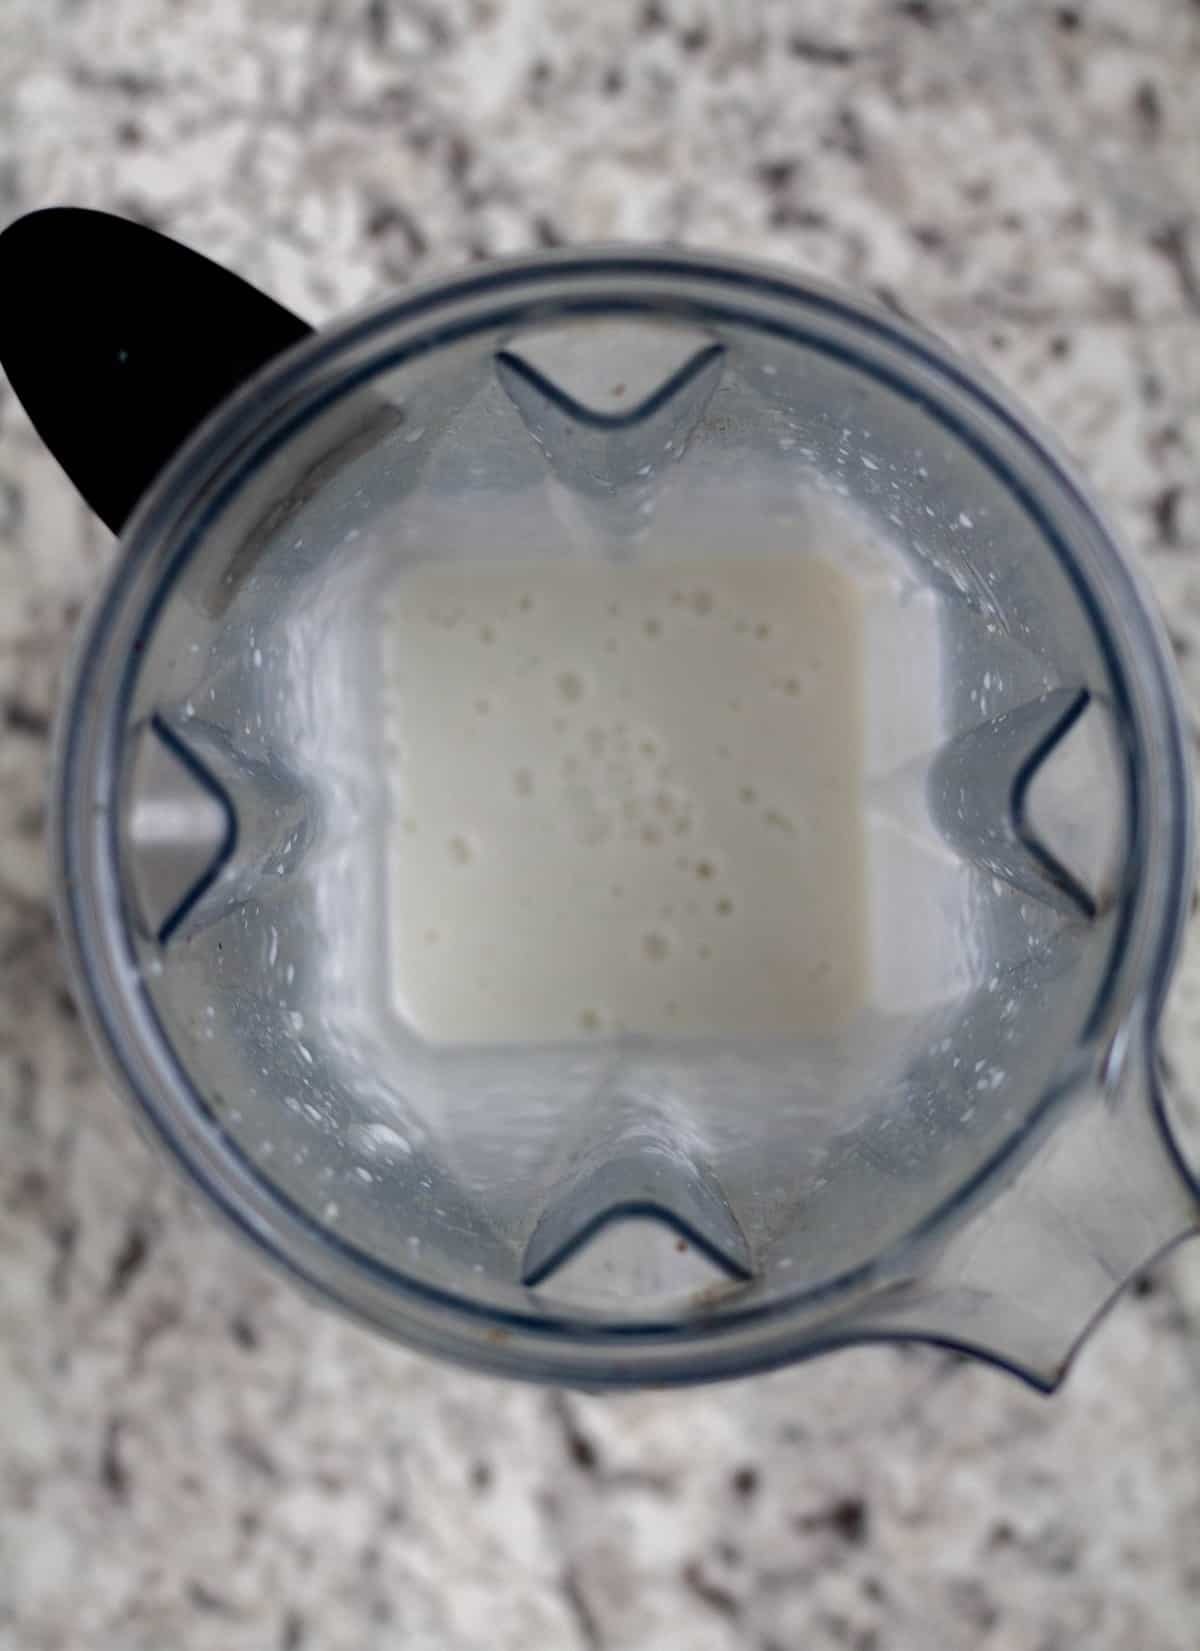 Steamed cauliflower and coconut cream blended in vitamix jar